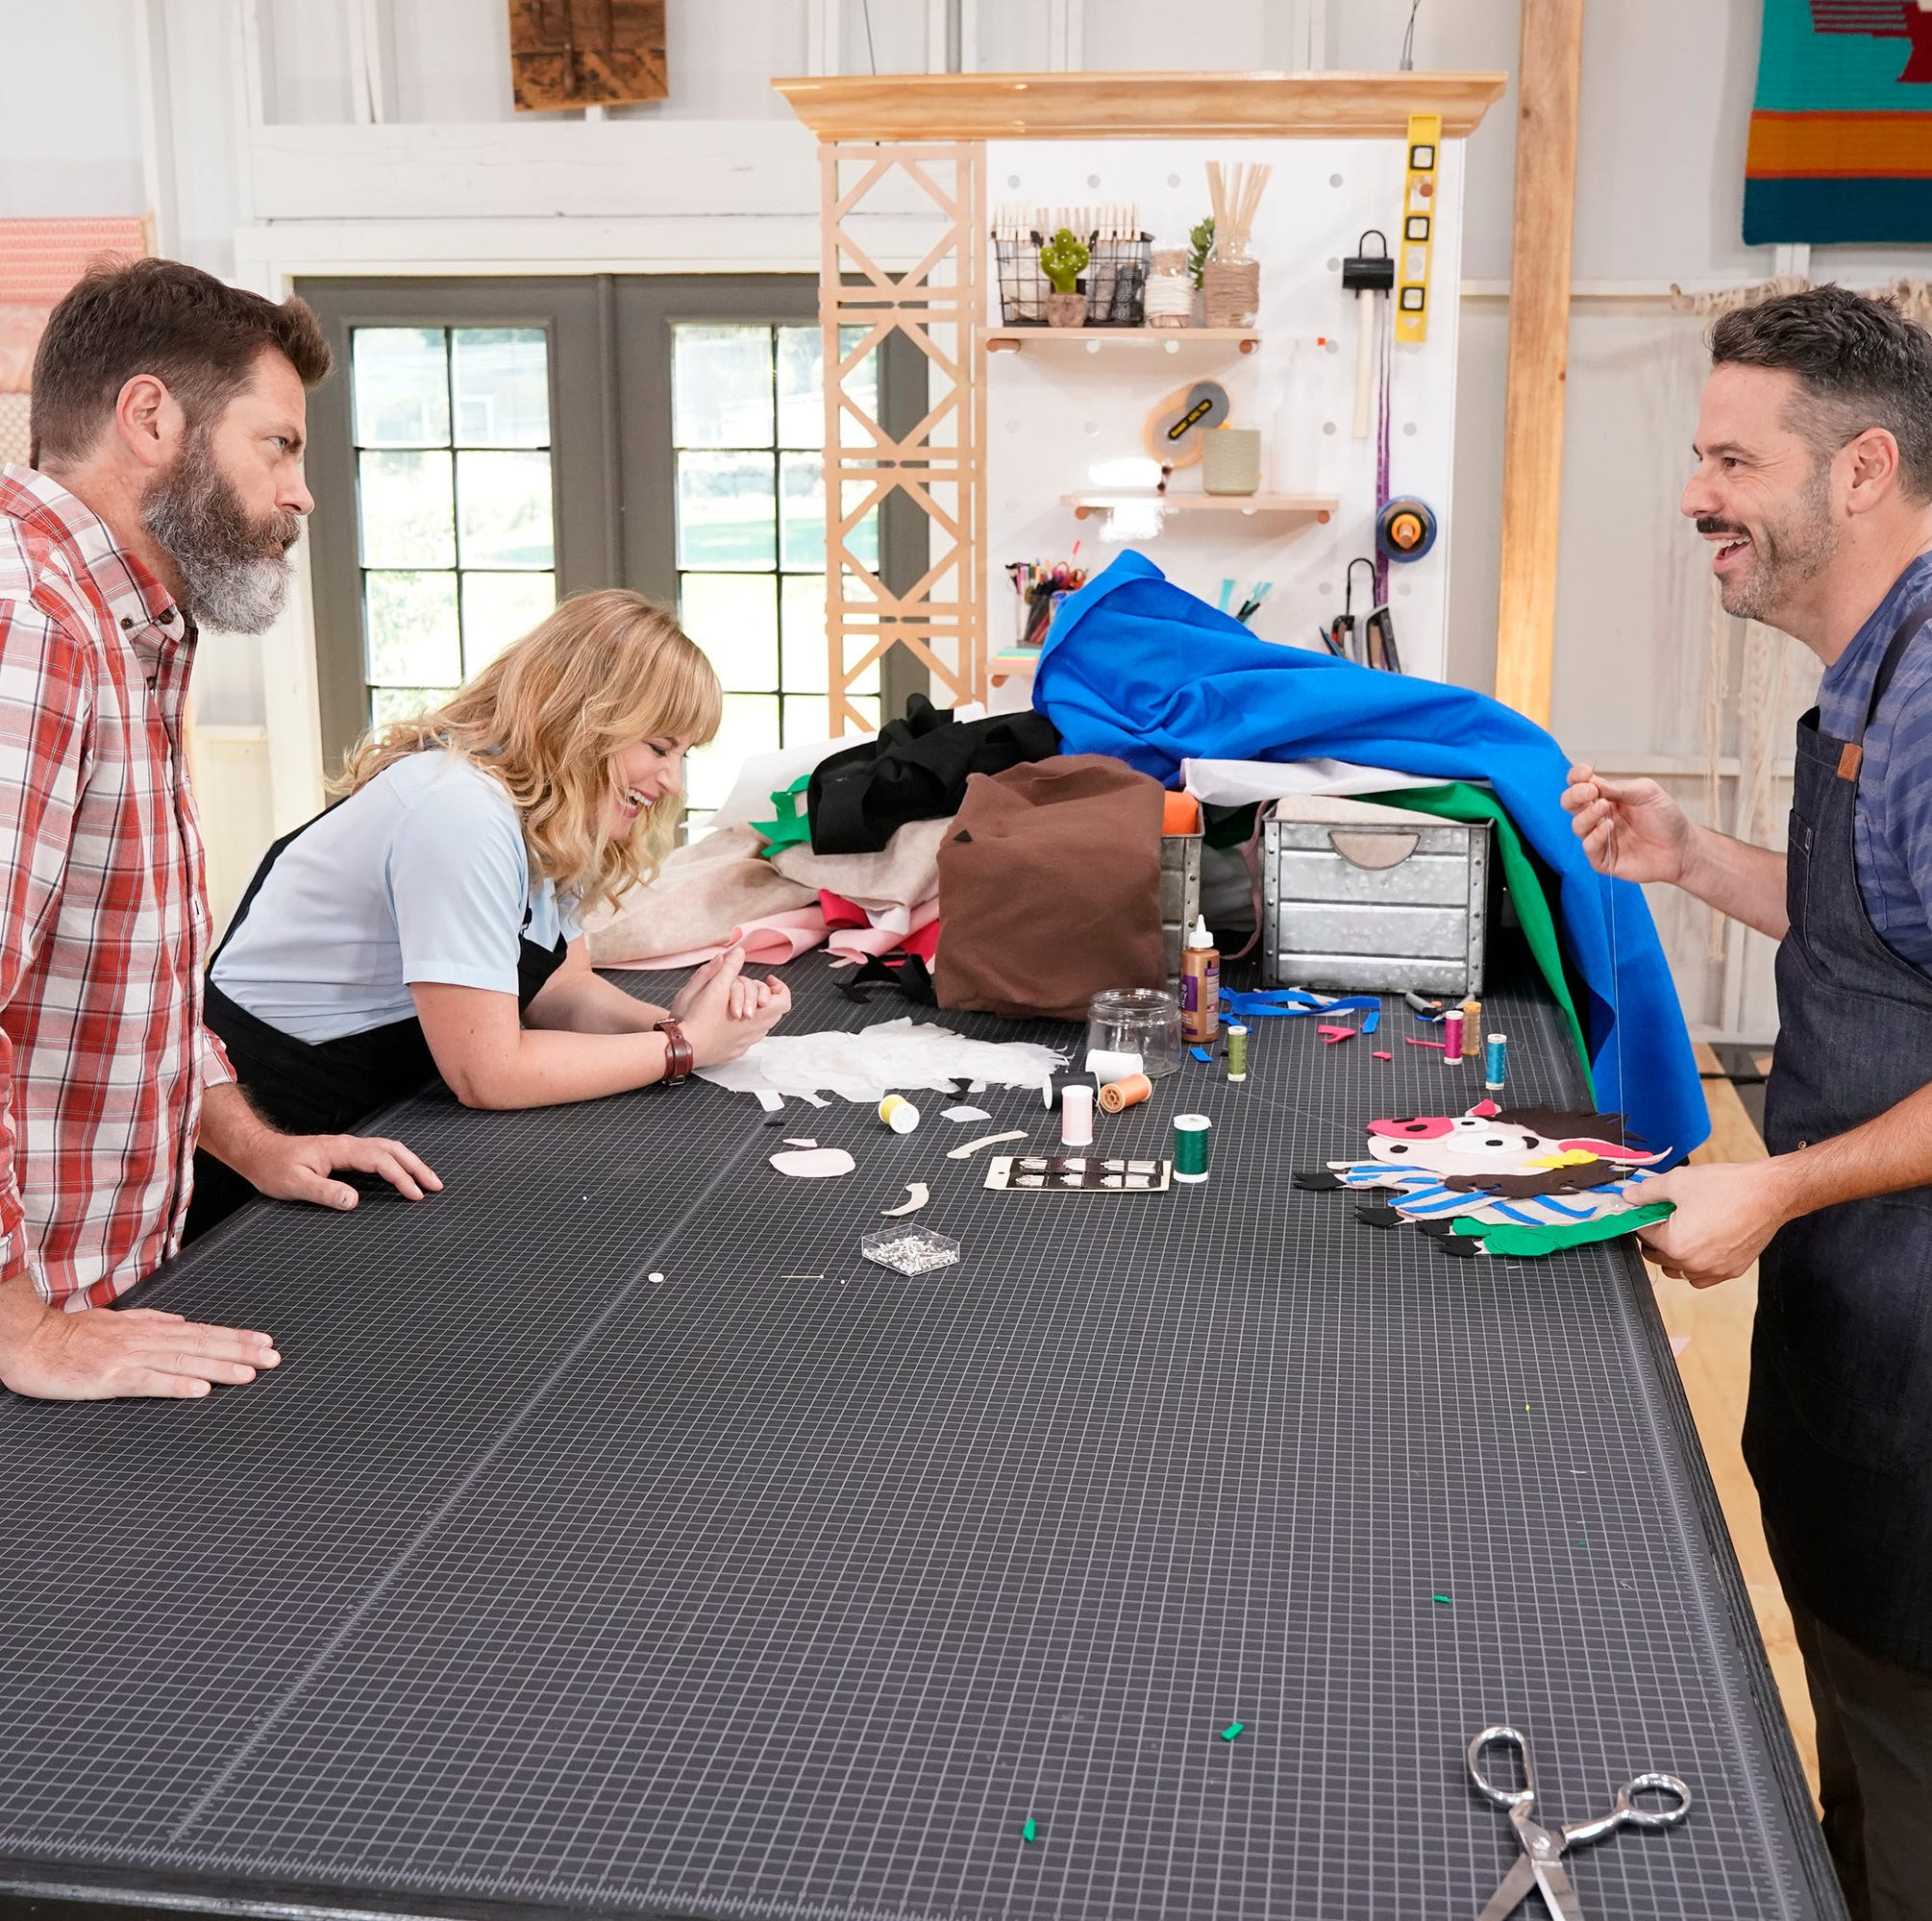 Parents compete on new crafting show 'Making It'